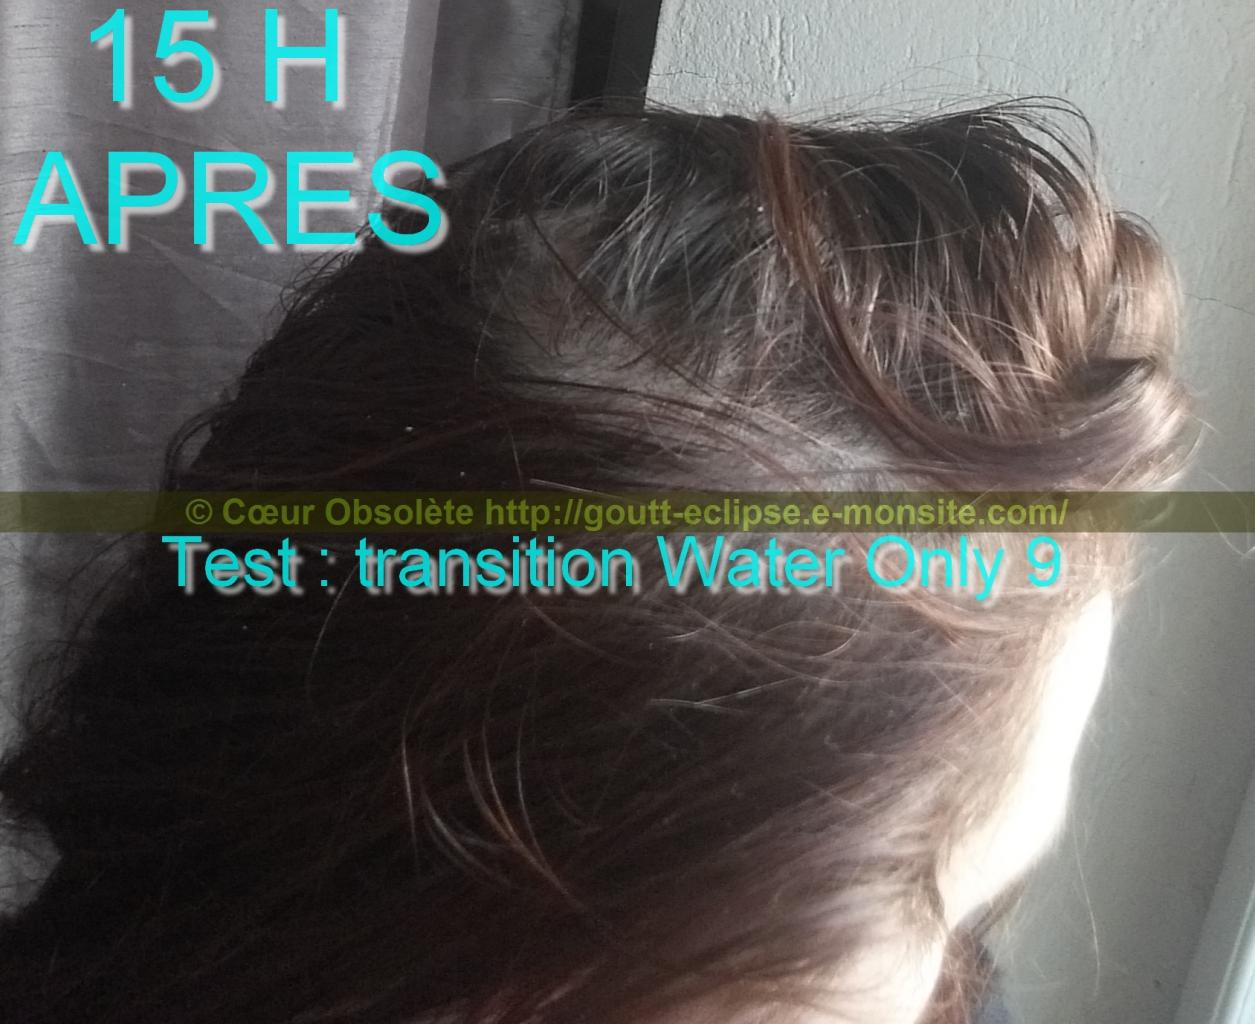 04 Fév 2018 Test Water Only Transition lavage N°9 photo 10